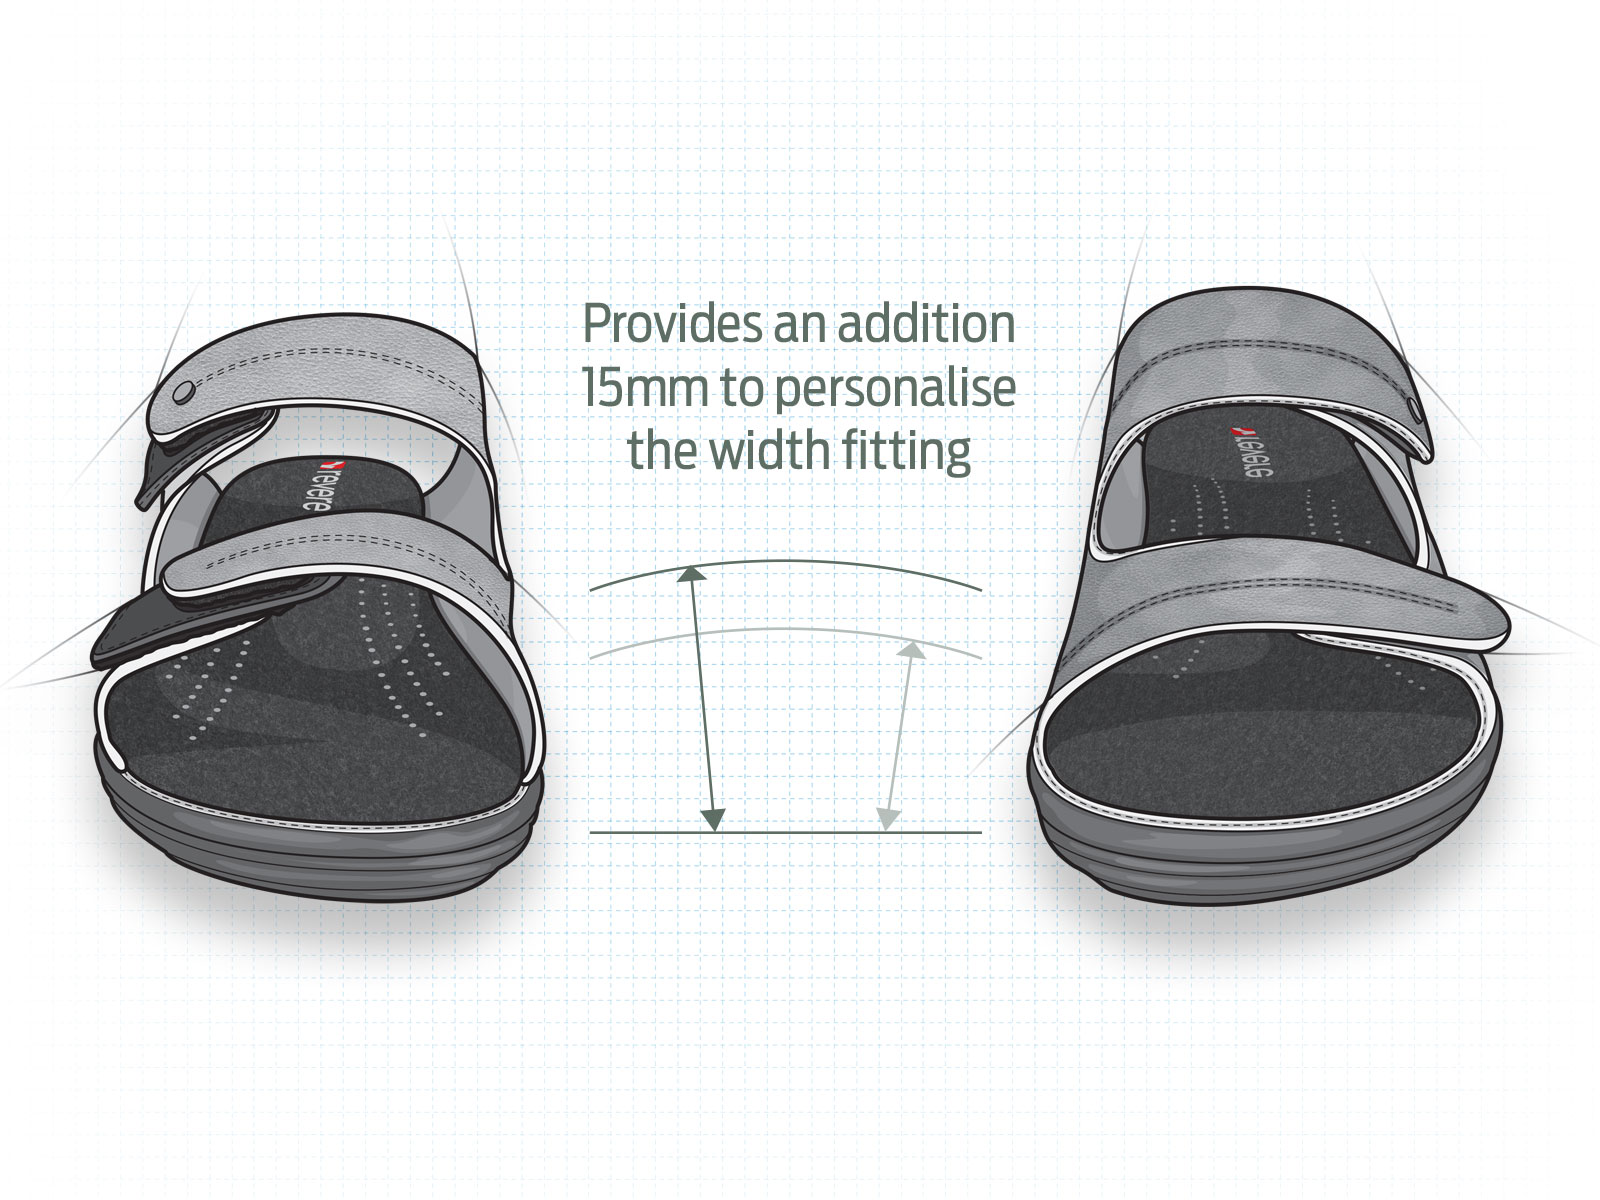 Technical informative medical footware illustration